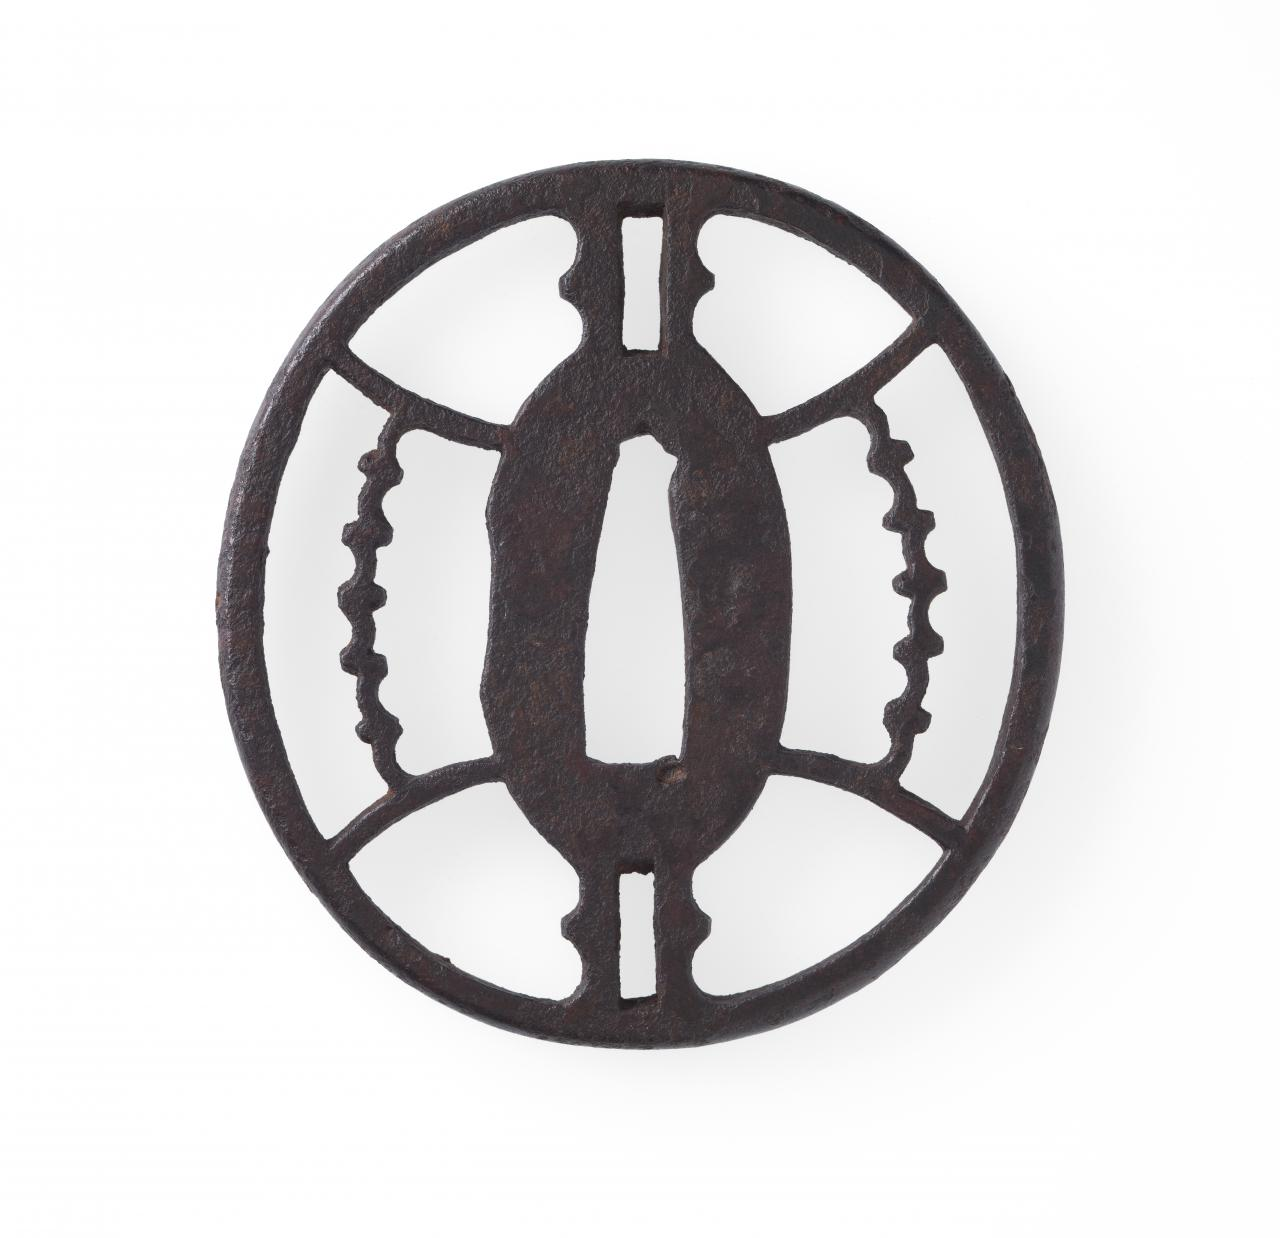 Sword guard with geometric design